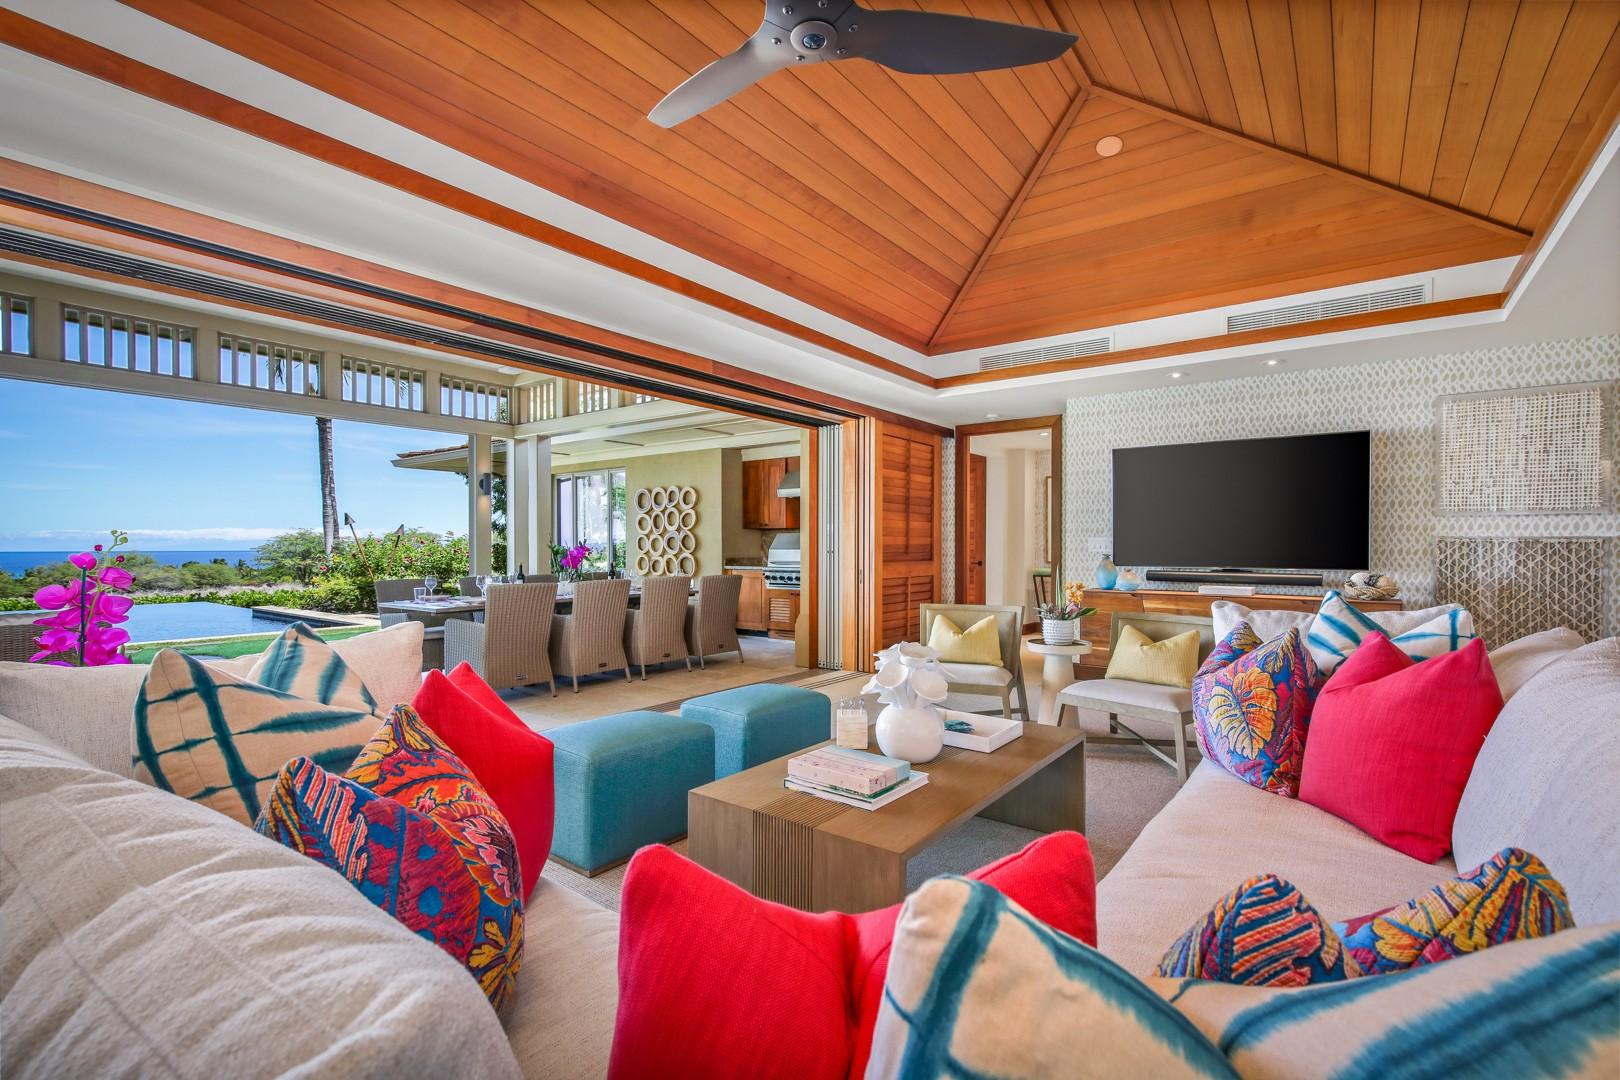 Living area with vaulted ceilings and bold beautiful fabrics and colors.